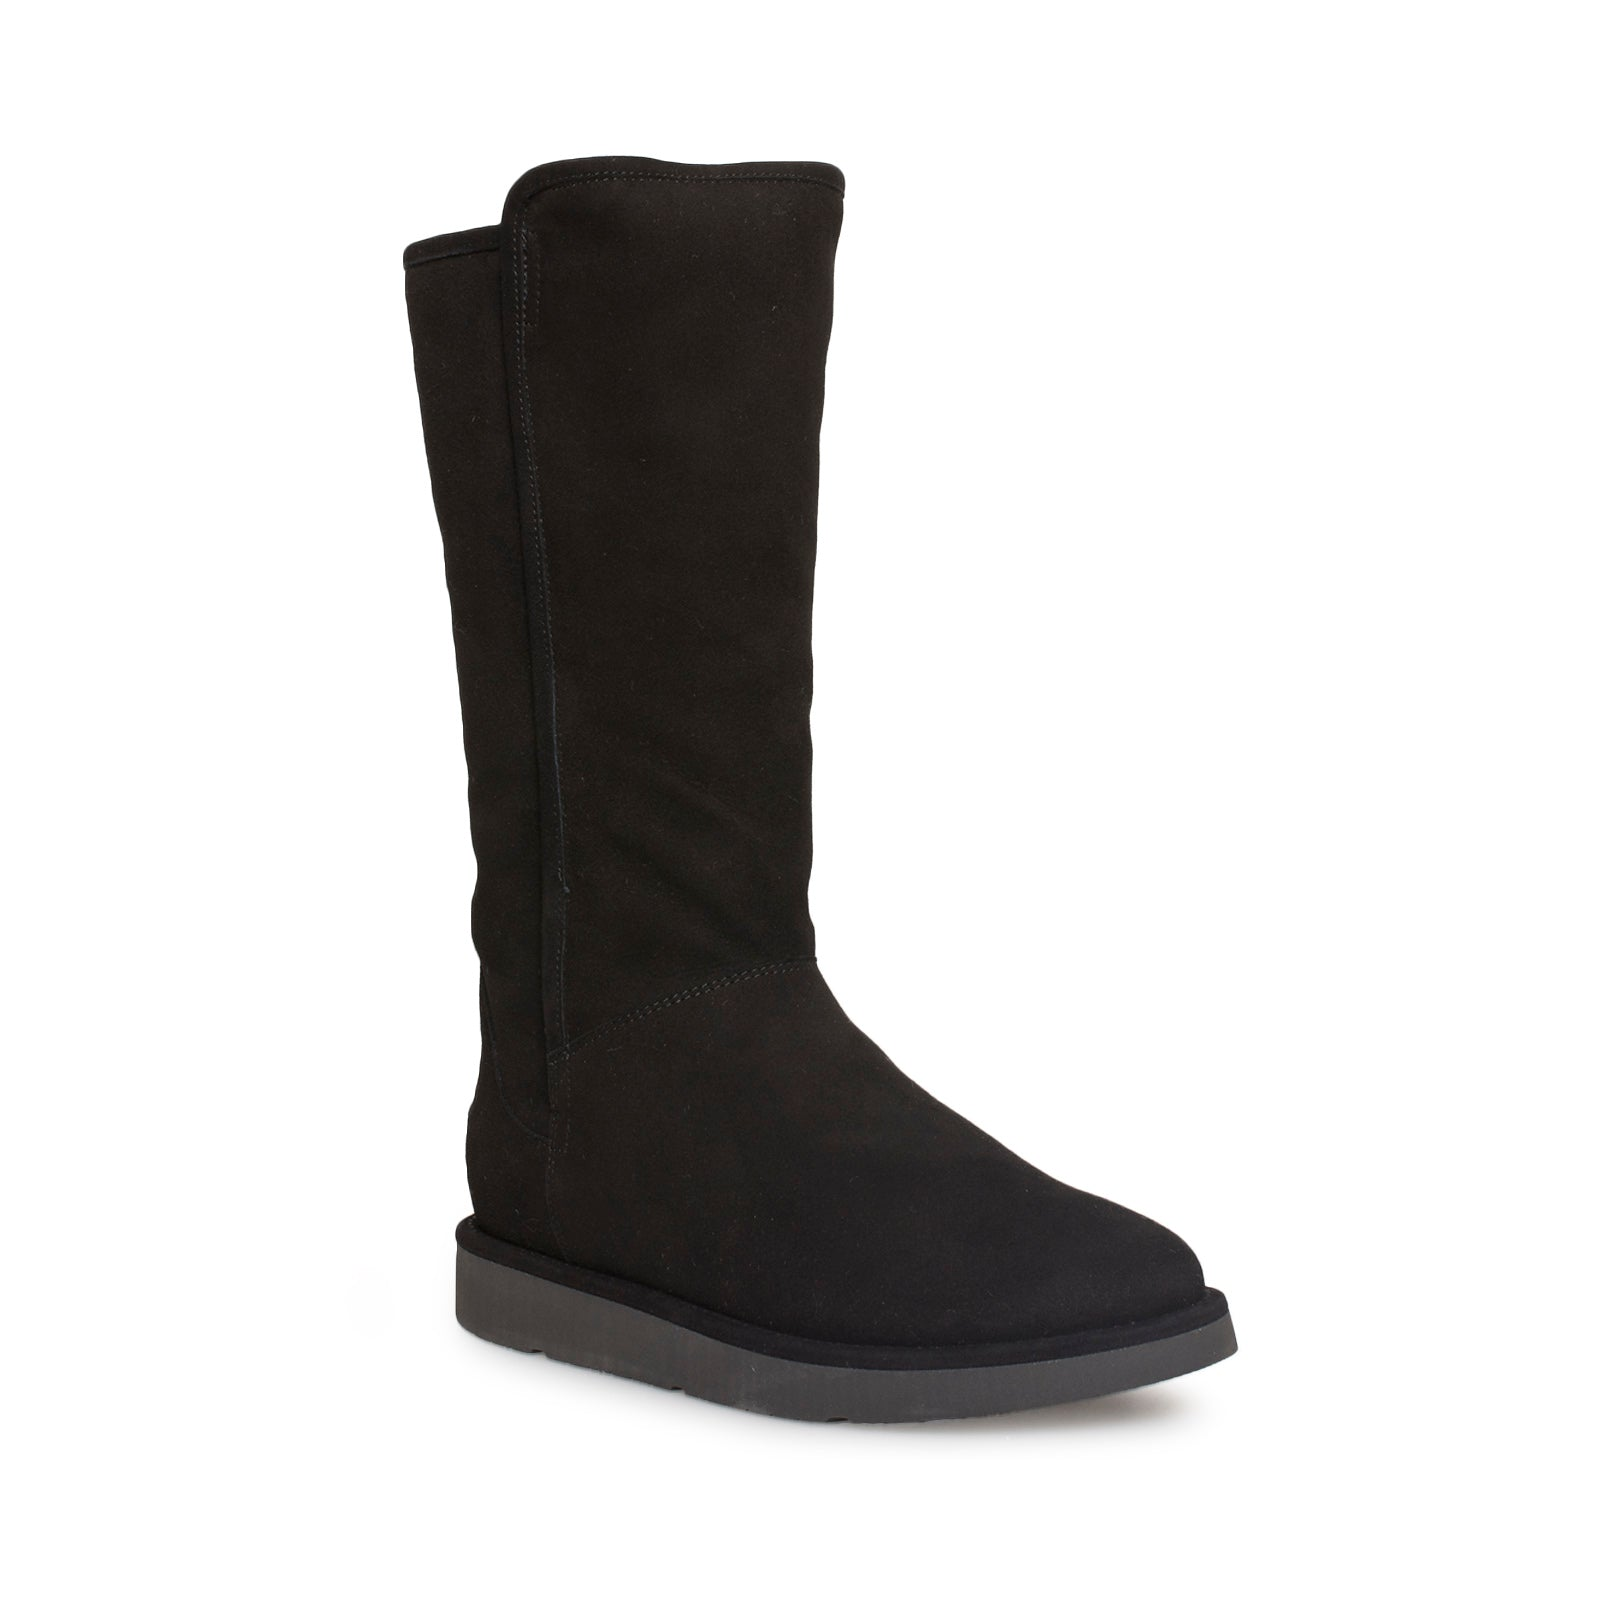 5c3a6bff24f Women's Boots Tagged